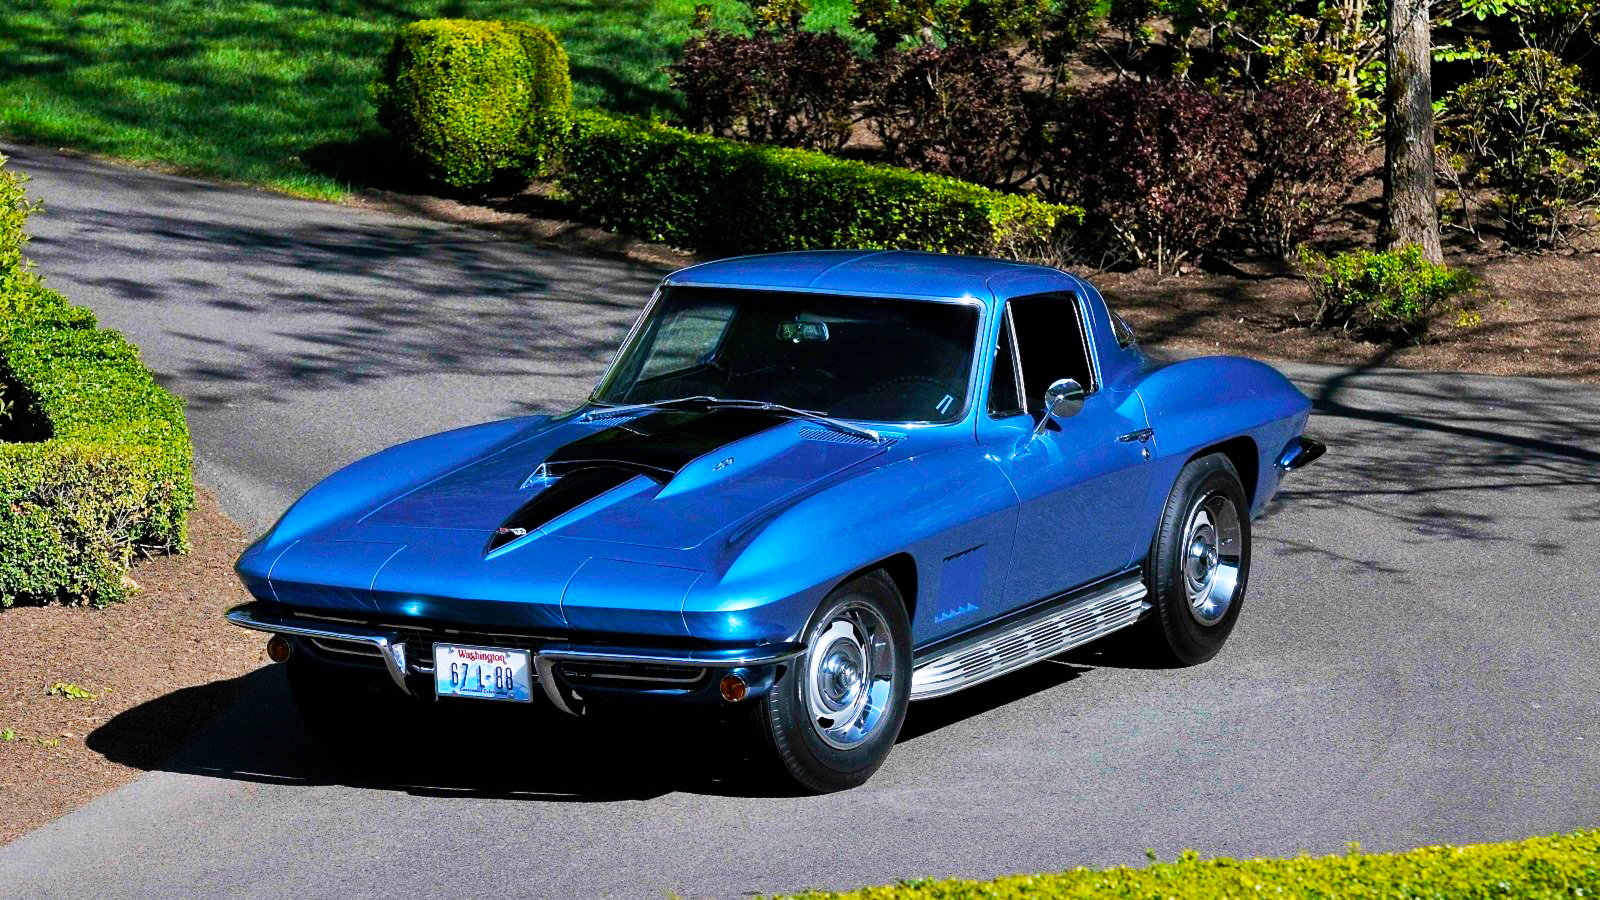 8 of the Rarest Corvettes on the Planet